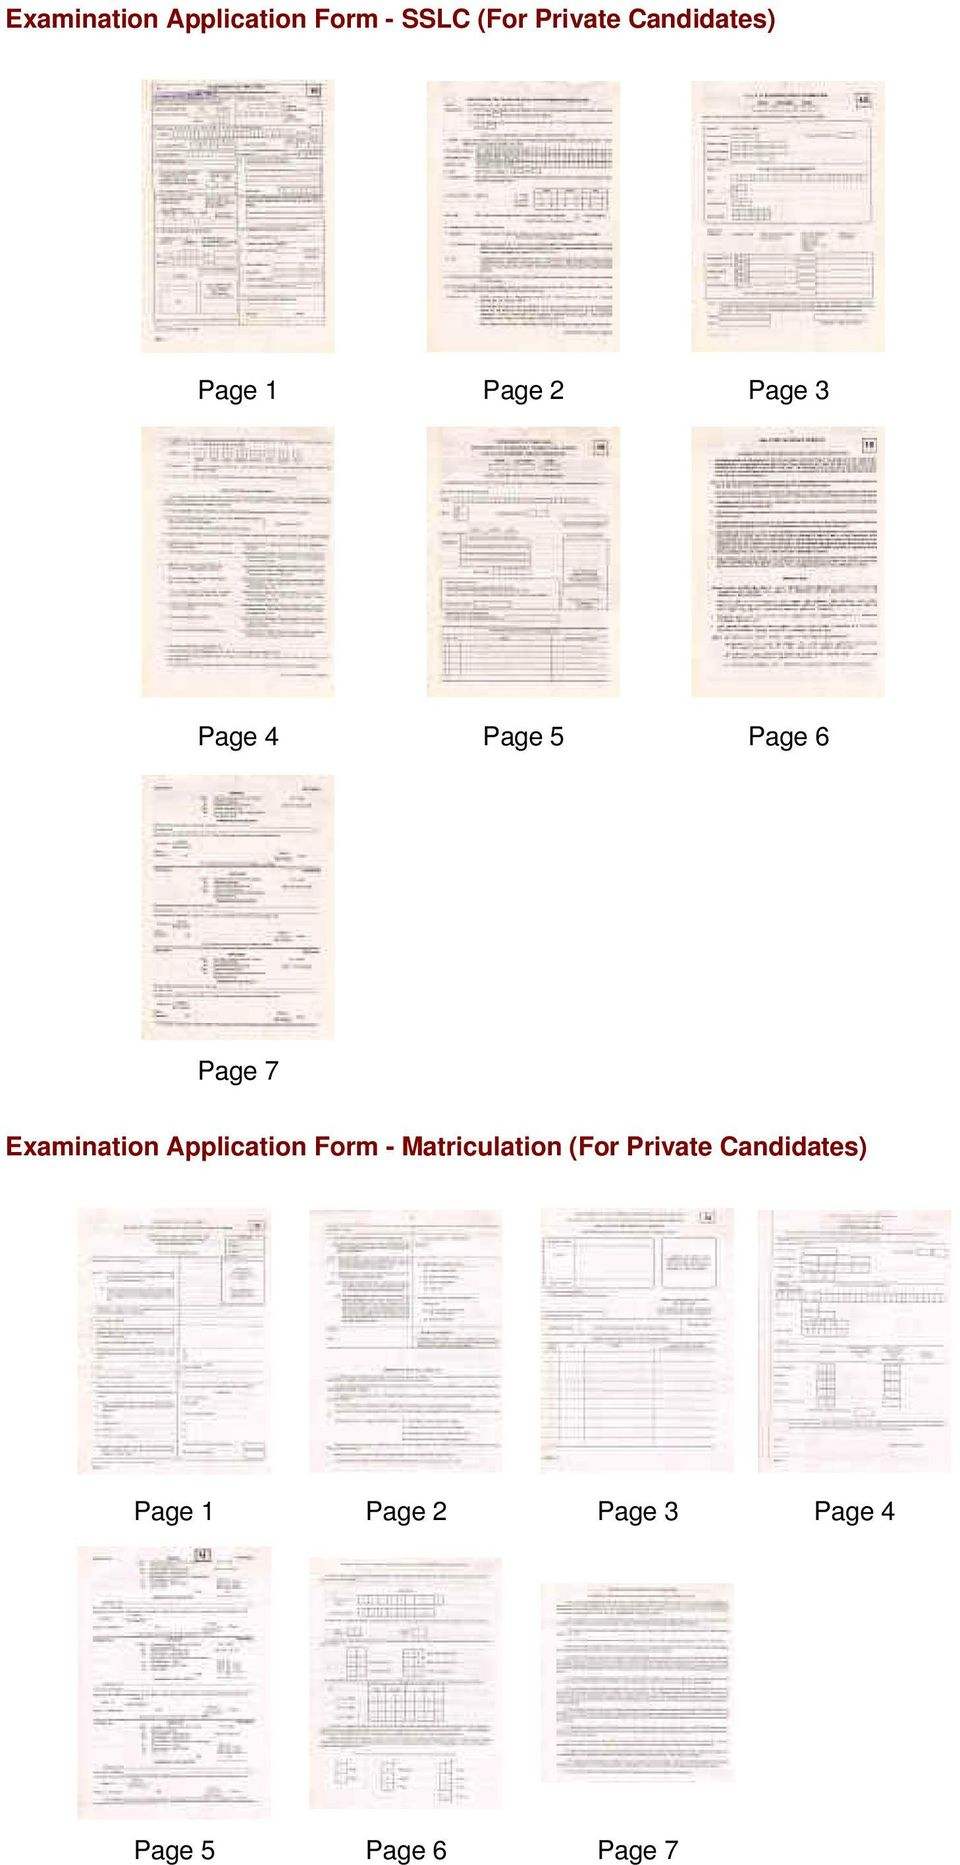 Page 7 Examination Application Form - Matriculation (For